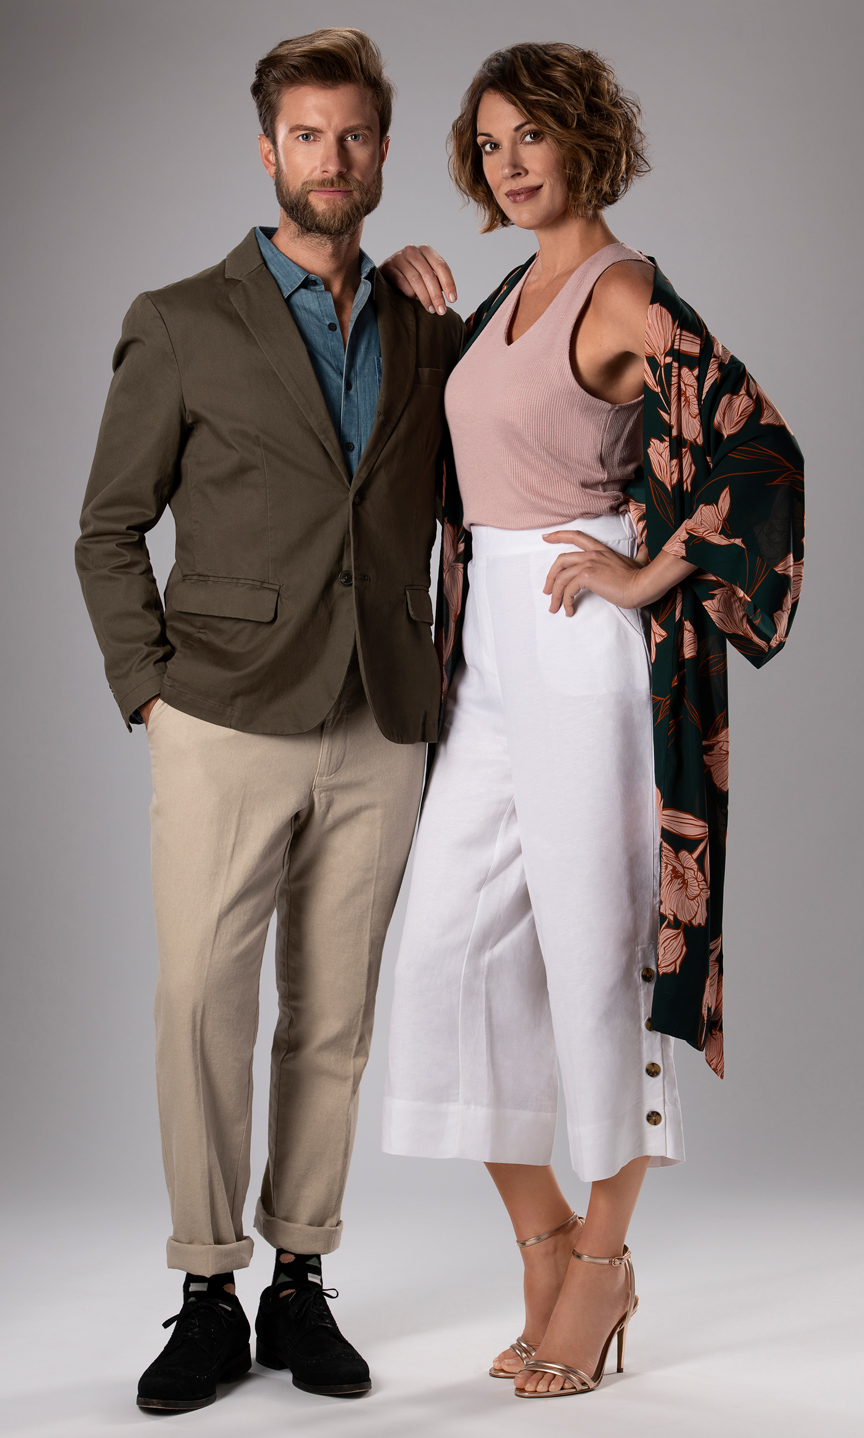 photo of a couple for a fashion shoot